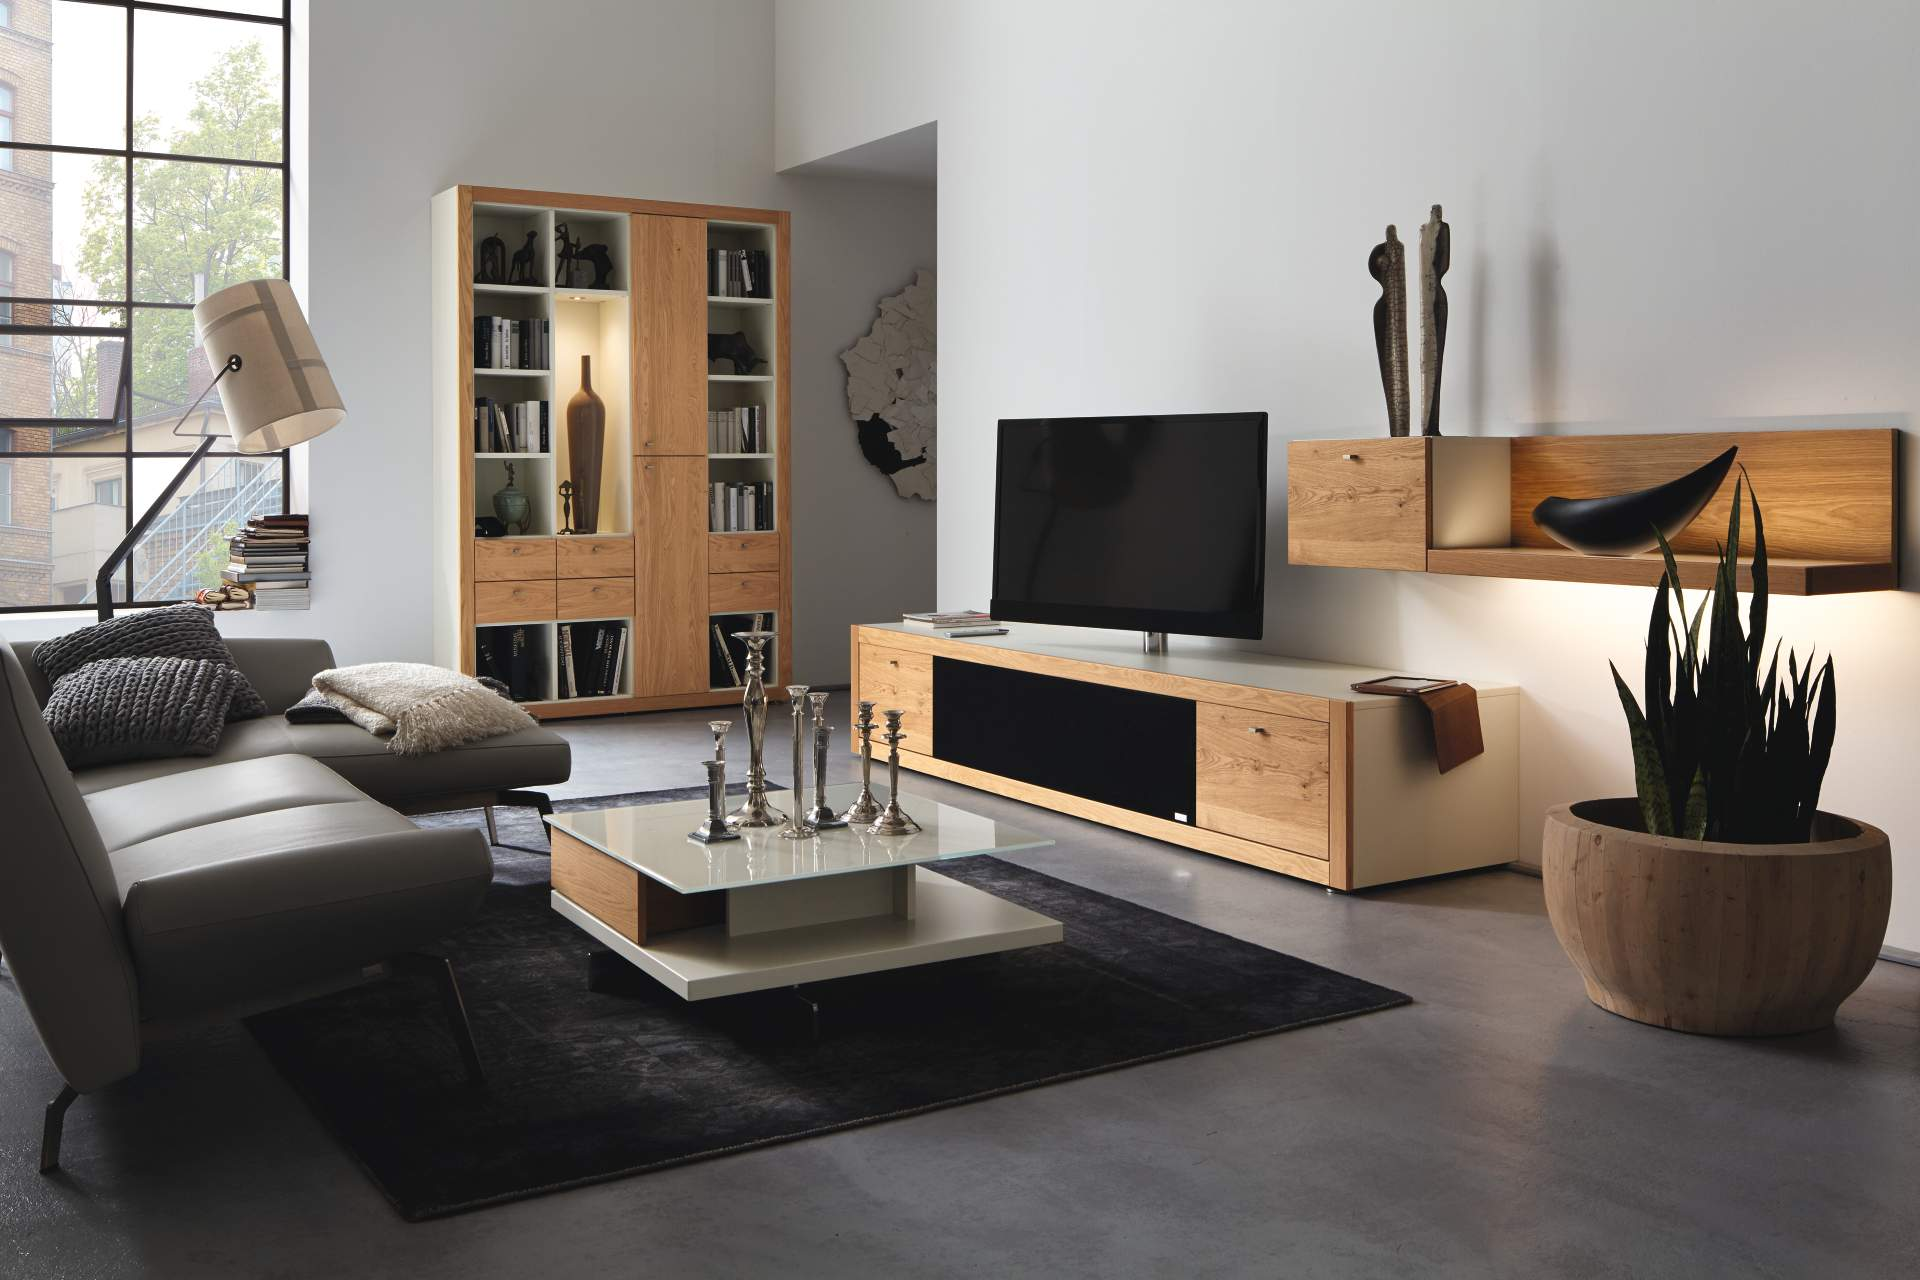 h lsta wohnzimmer m bel wohnwand sideboard. Black Bedroom Furniture Sets. Home Design Ideas